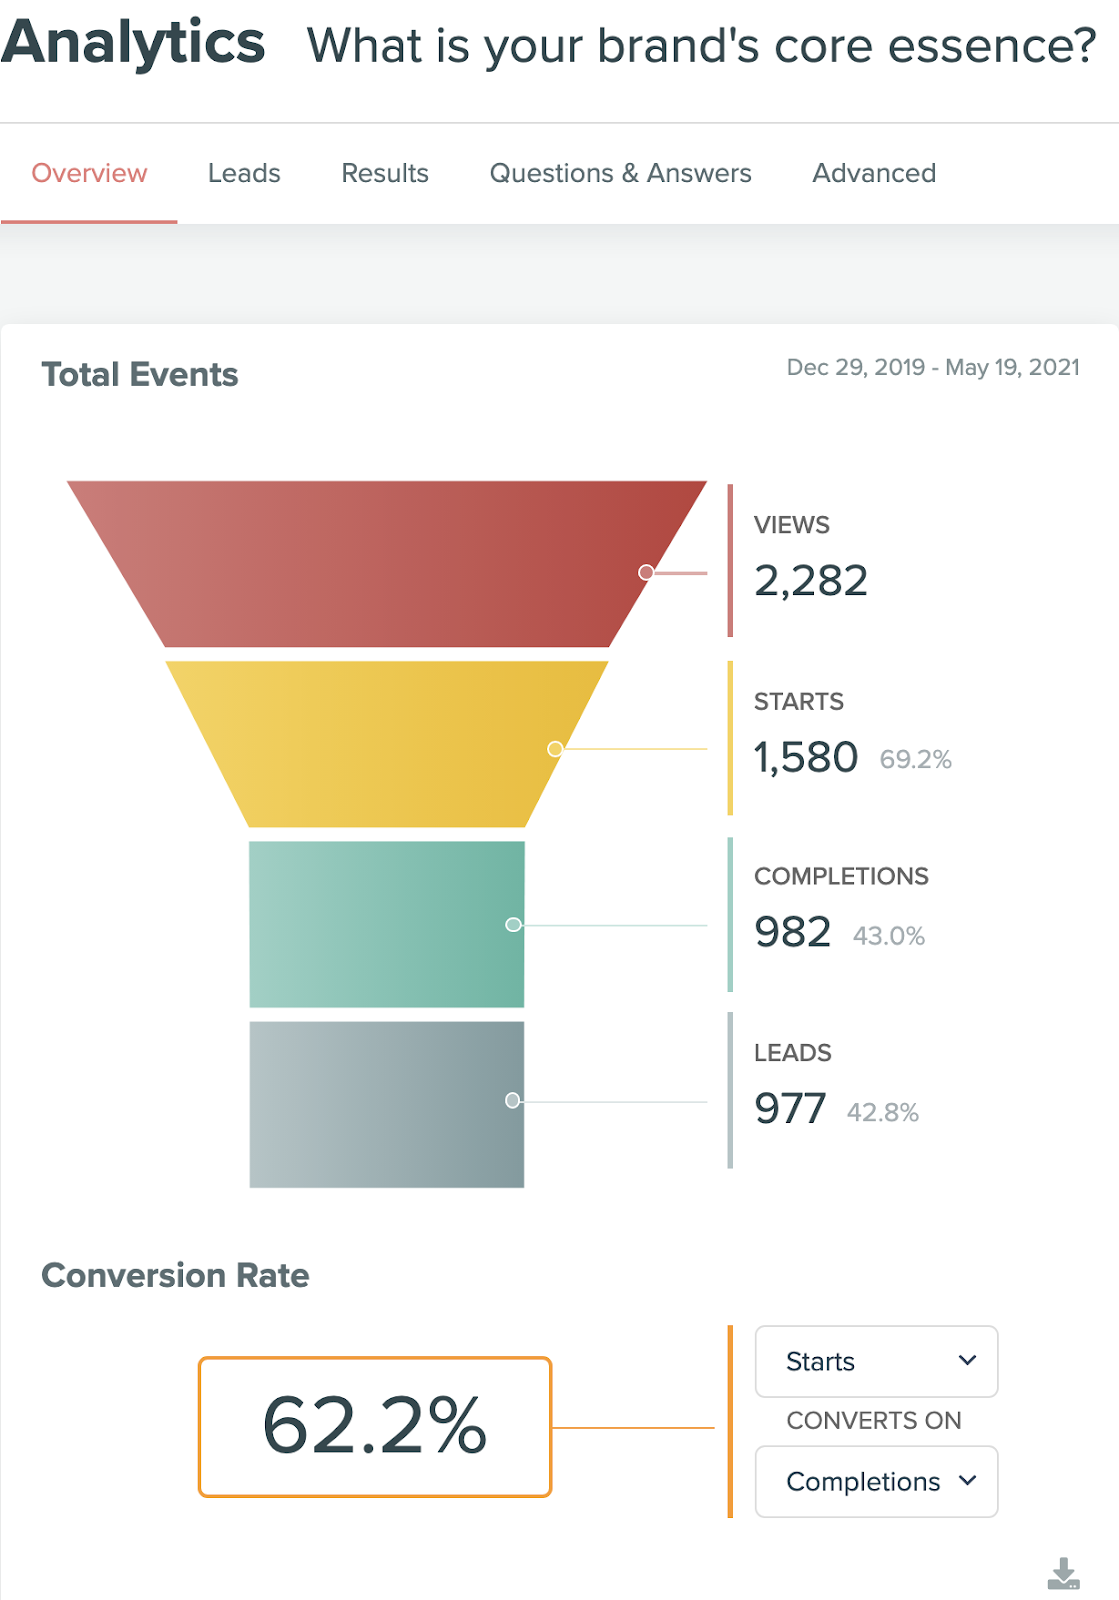 Analytics for quiz with showing 2200 views with 977 leads